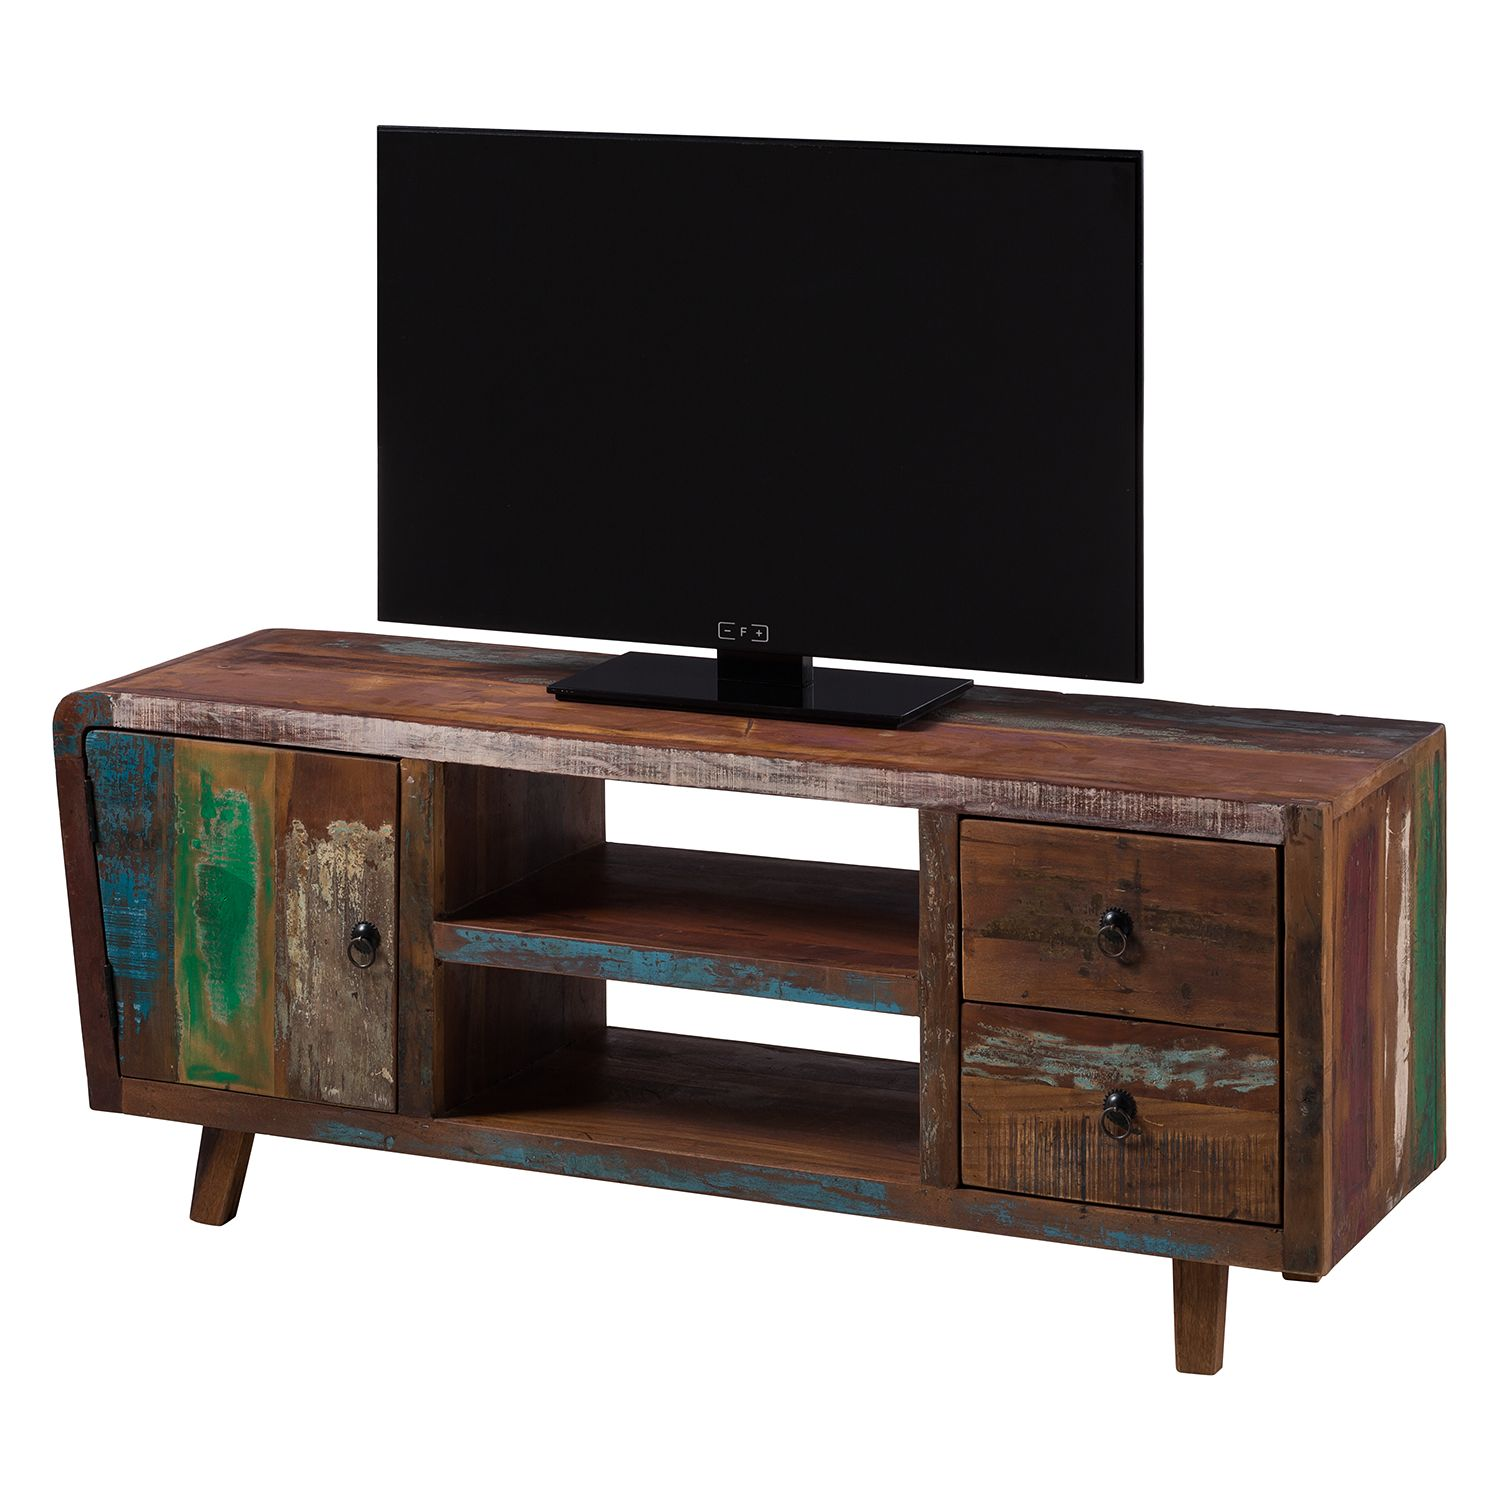 meuble tv yazoo bois recycl massif multicolore ars natura serrurieralaclef. Black Bedroom Furniture Sets. Home Design Ideas